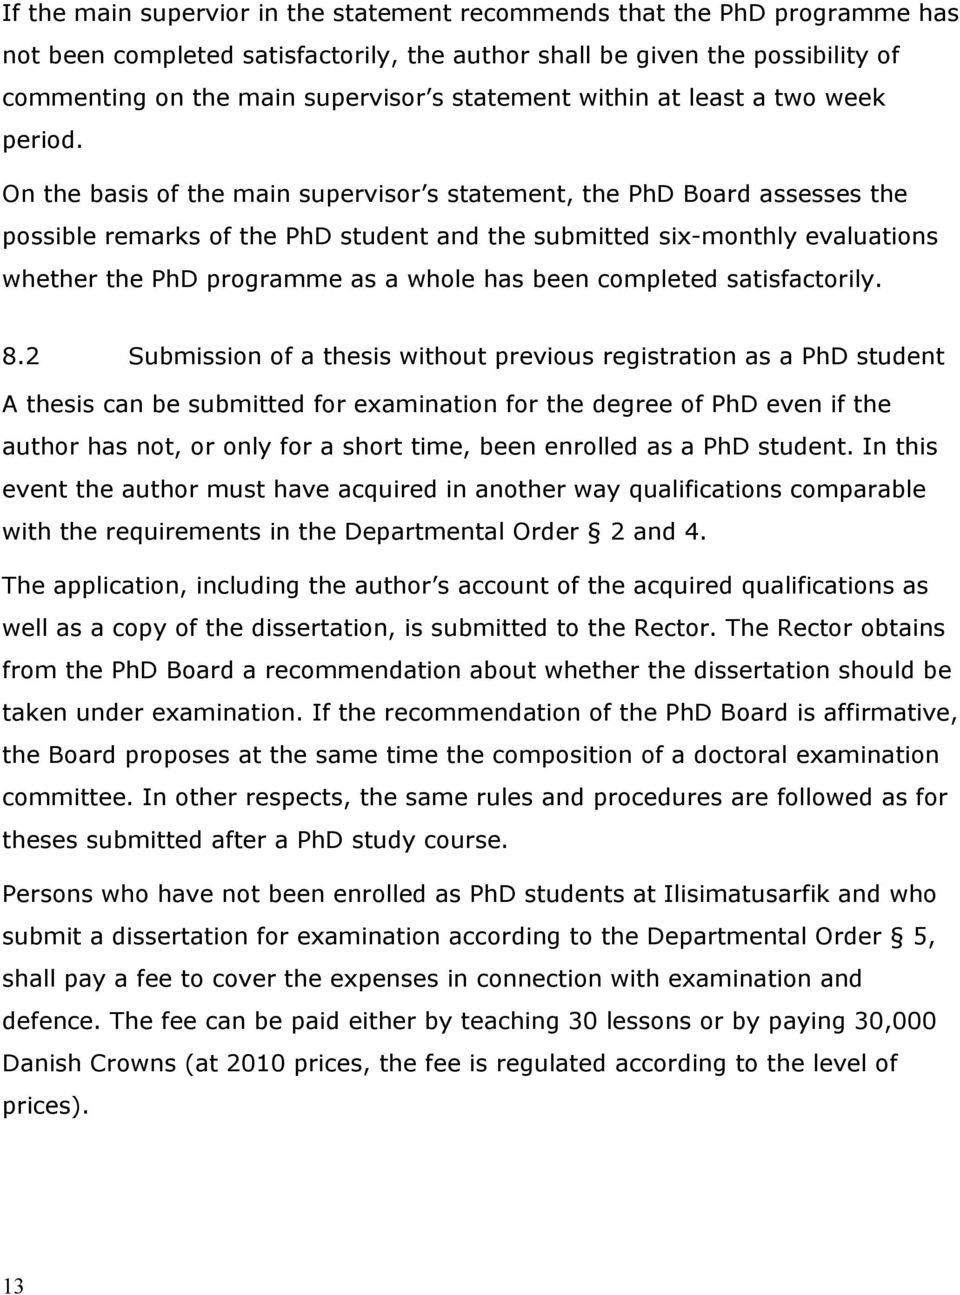 On the basis of the main supervisor s statement, the PhD Board assesses the possible remarks of the PhD student and the submitted six-monthly evaluations whether the PhD programme as a whole has been